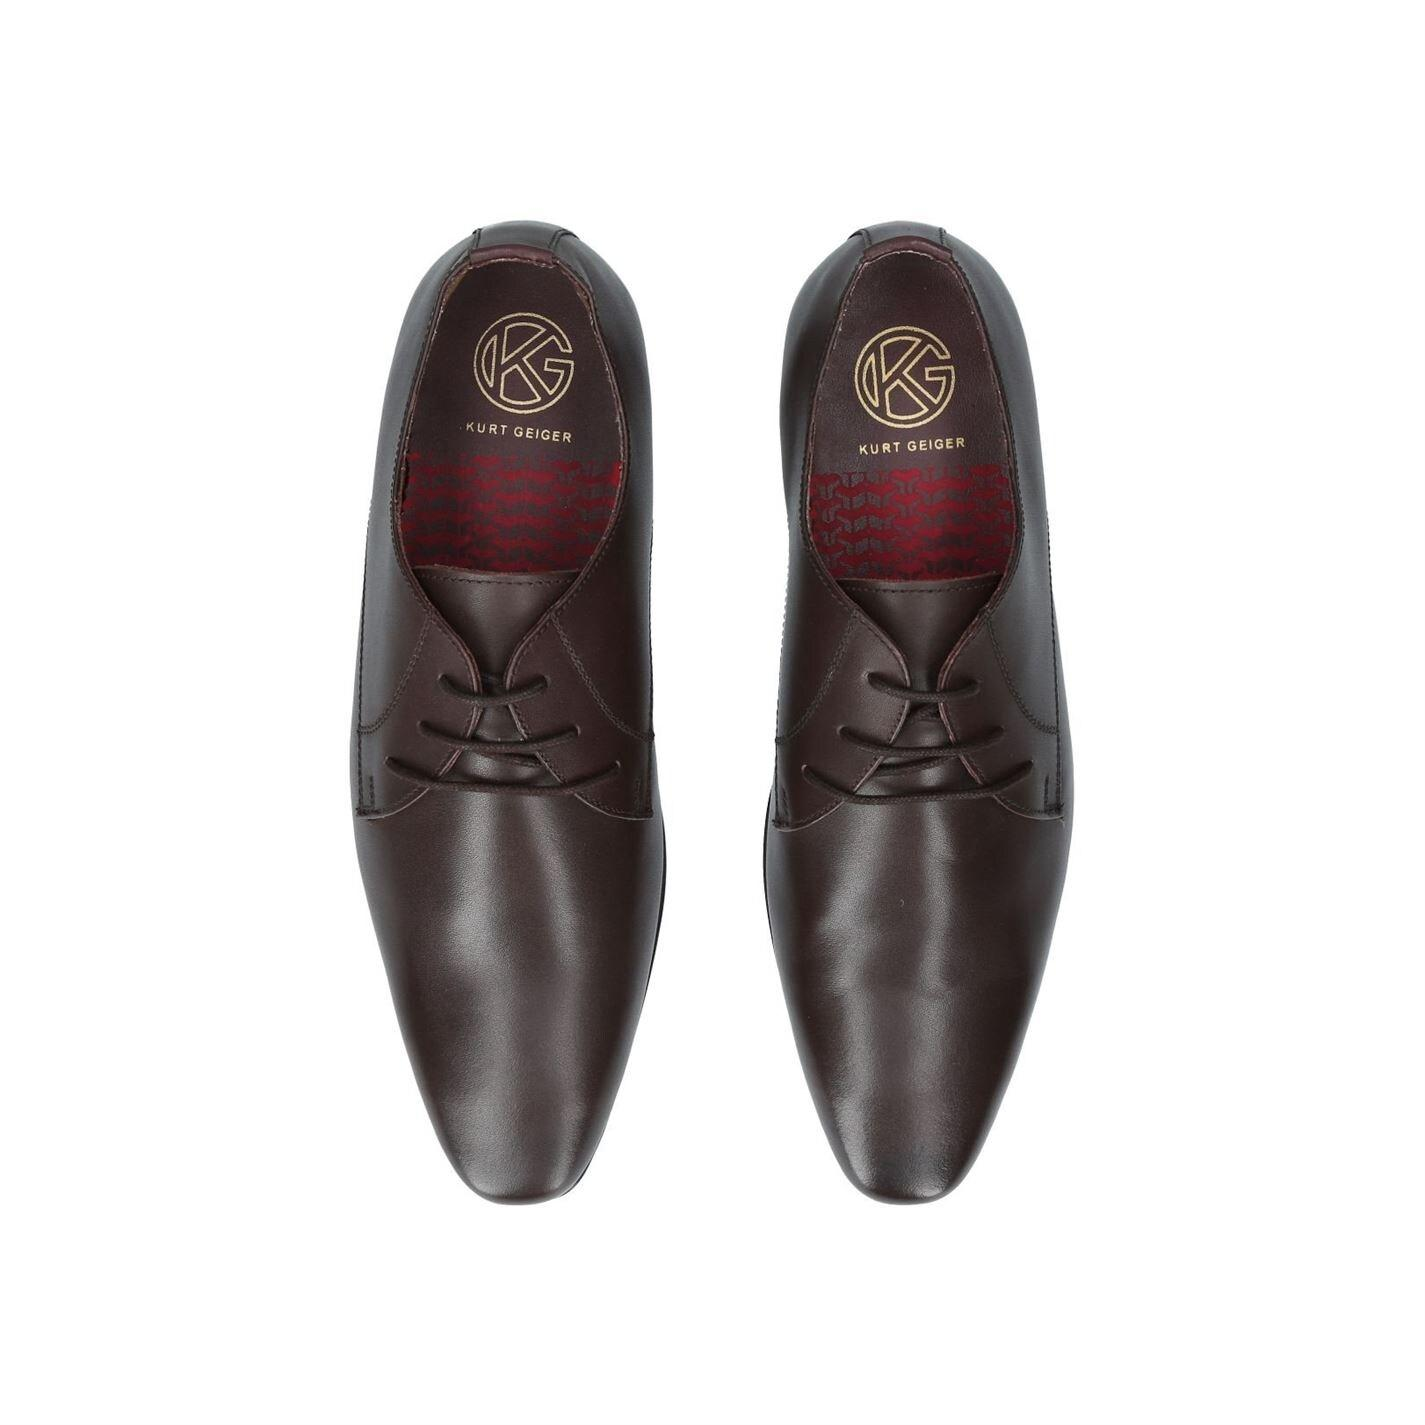 KG by Kurt Geiger Kendal Oxford Shoes in Brown for Men